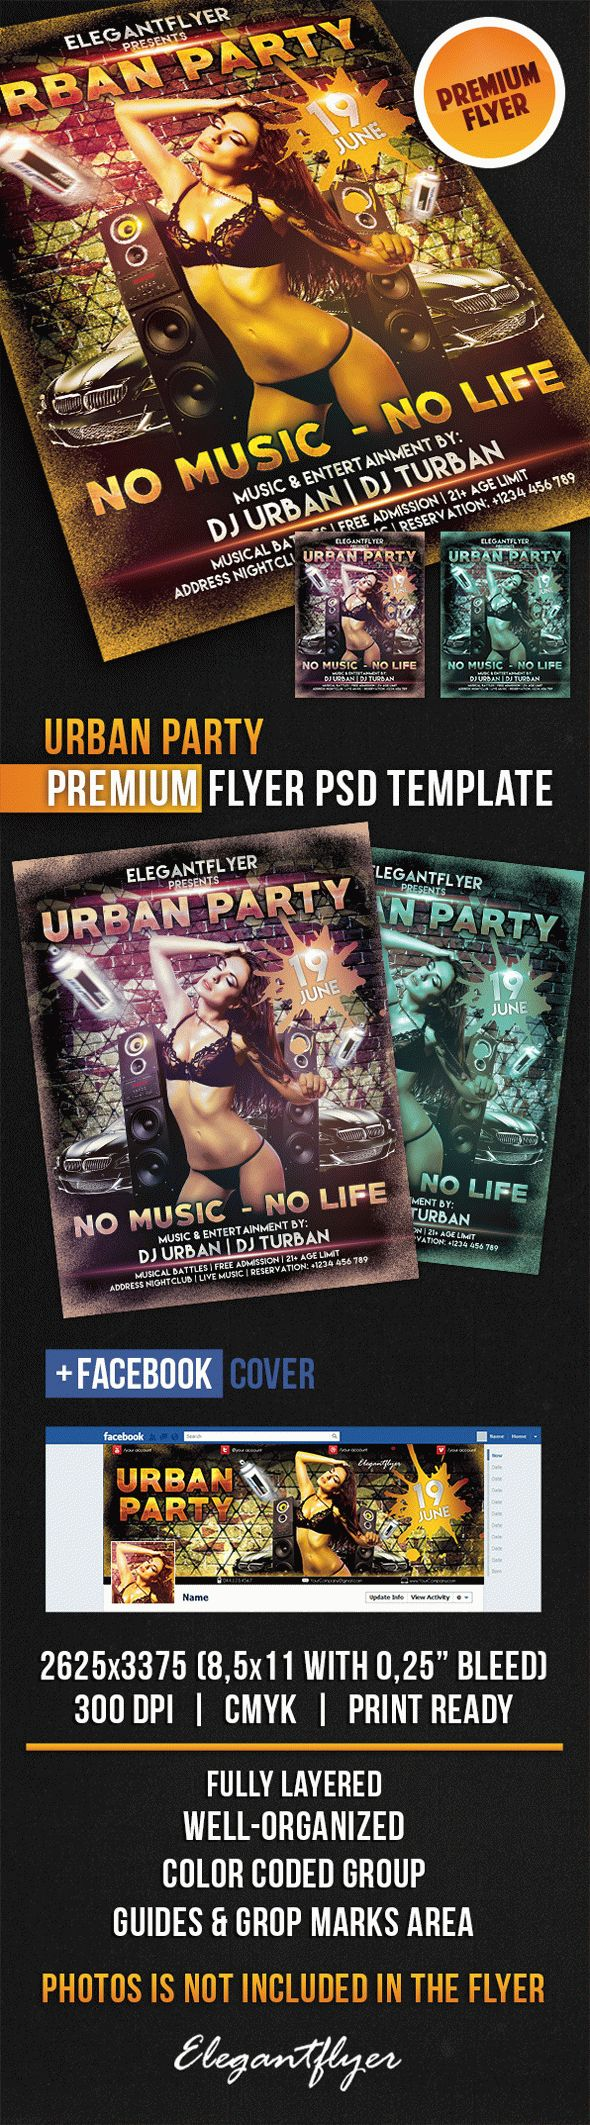 Urban Party Flyer for Printable